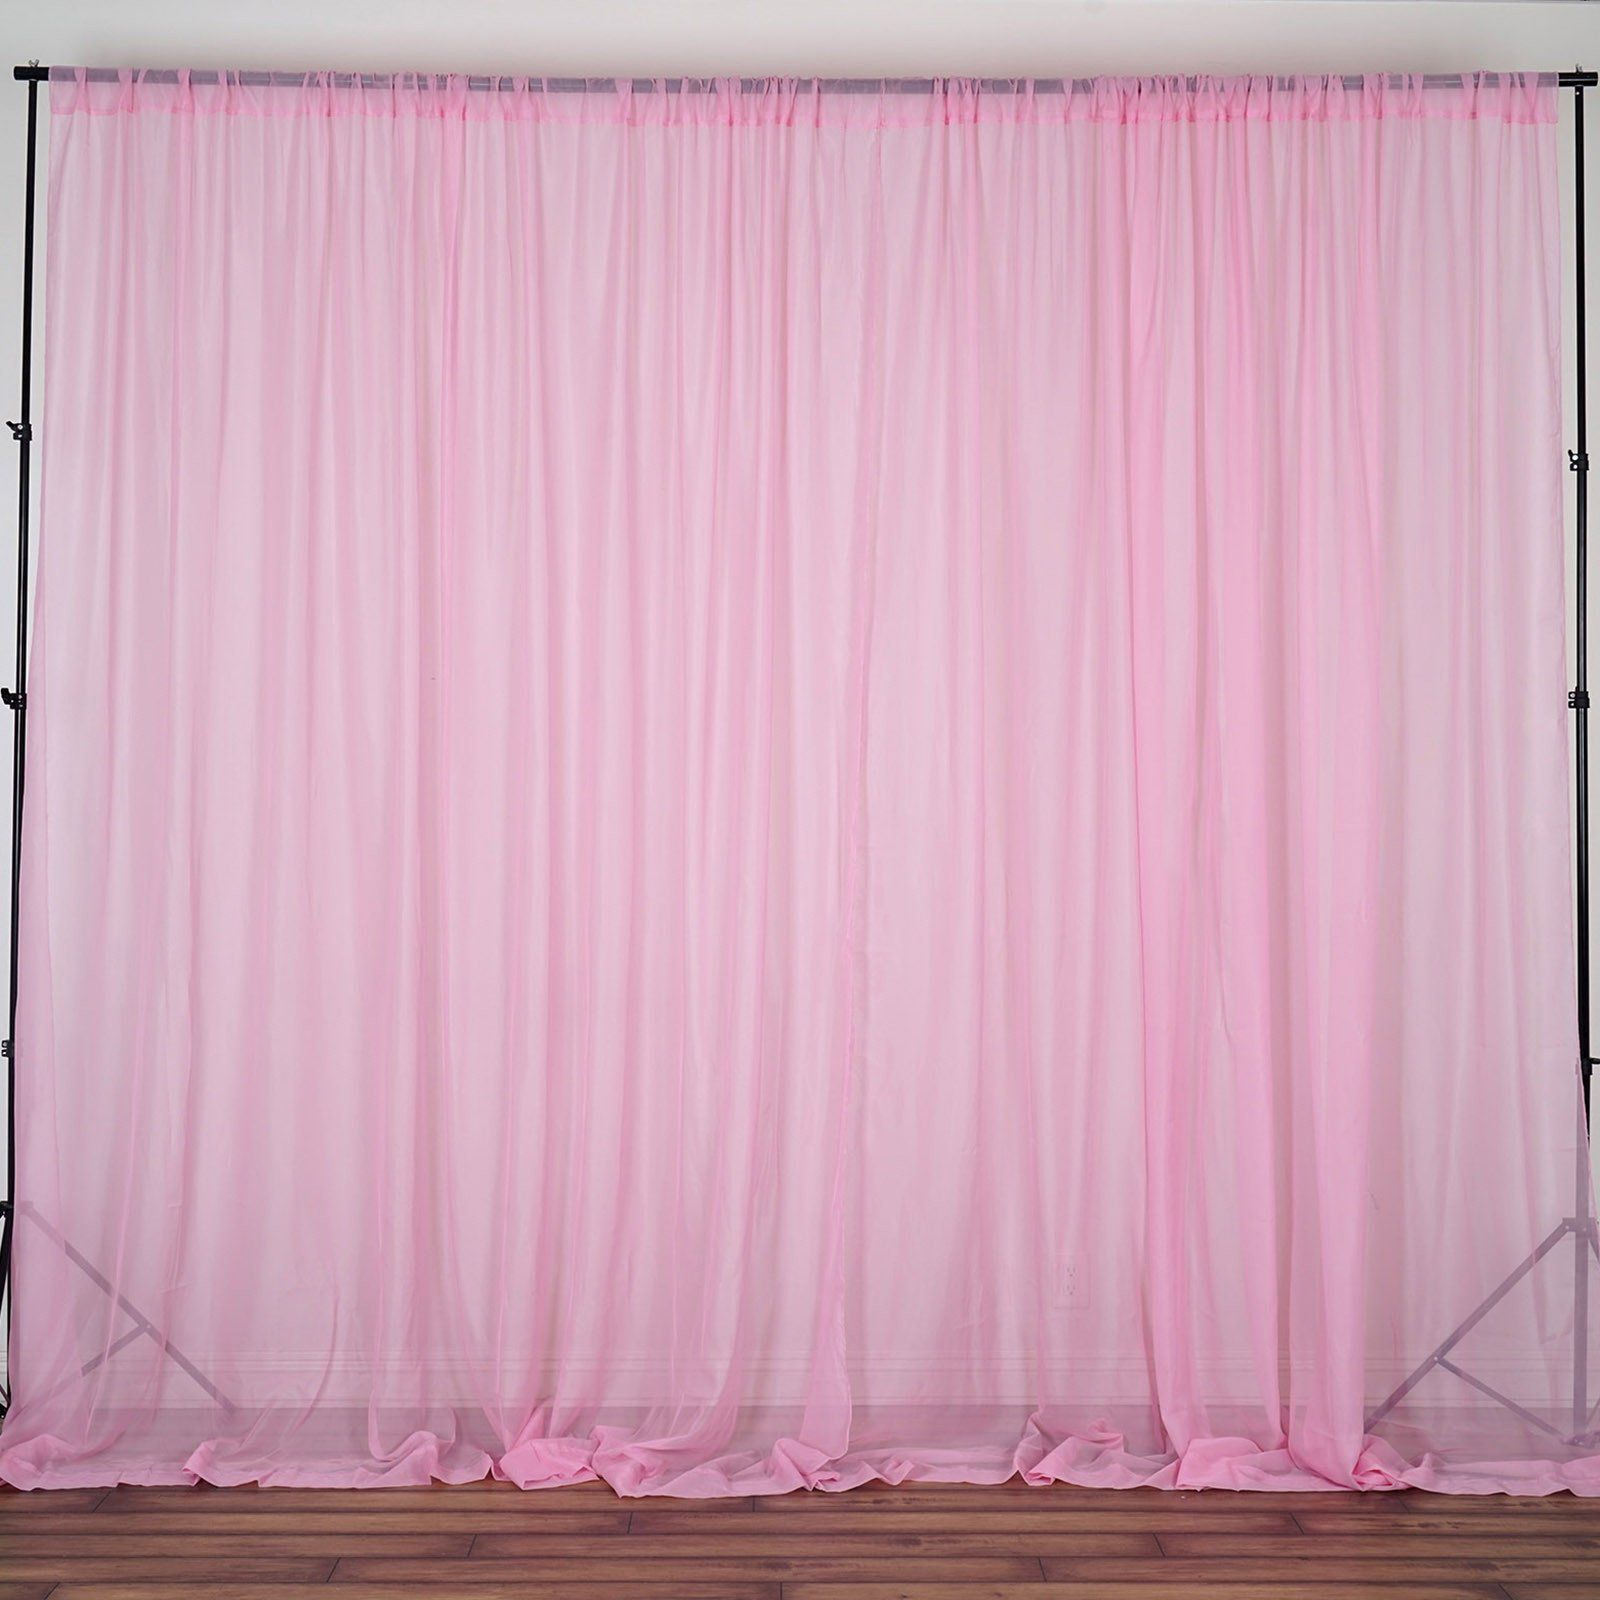 Free 2 Day Shipping Buy Balsacircle 10 Ft X 10 Ft Polyester Professional Backdrop Curtains Wedding Ceremony Party Home W With Images Window Decor Curtains Custom Drapes